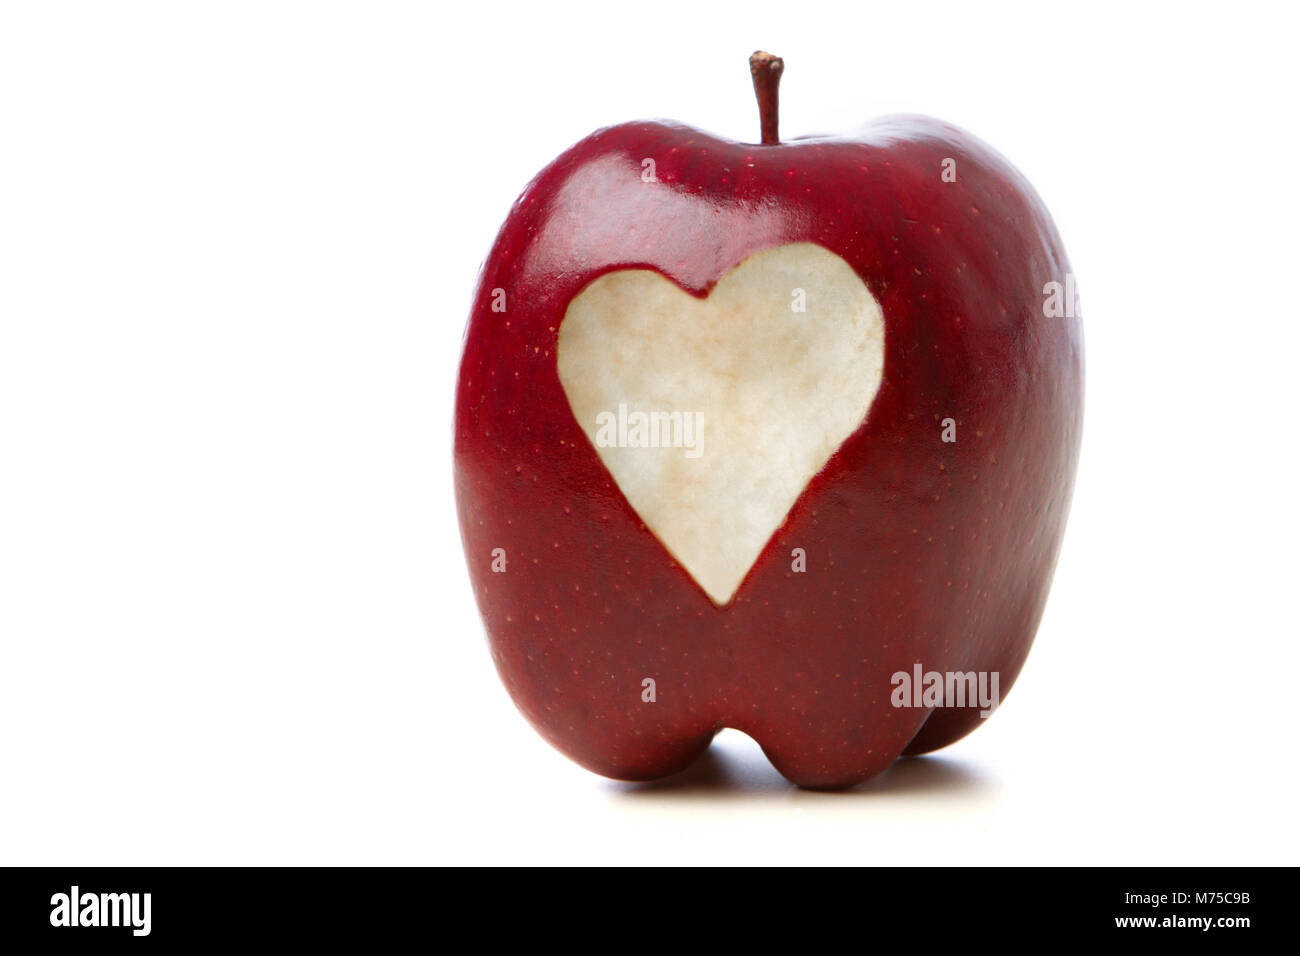 Apple with a heart. - Stock Image